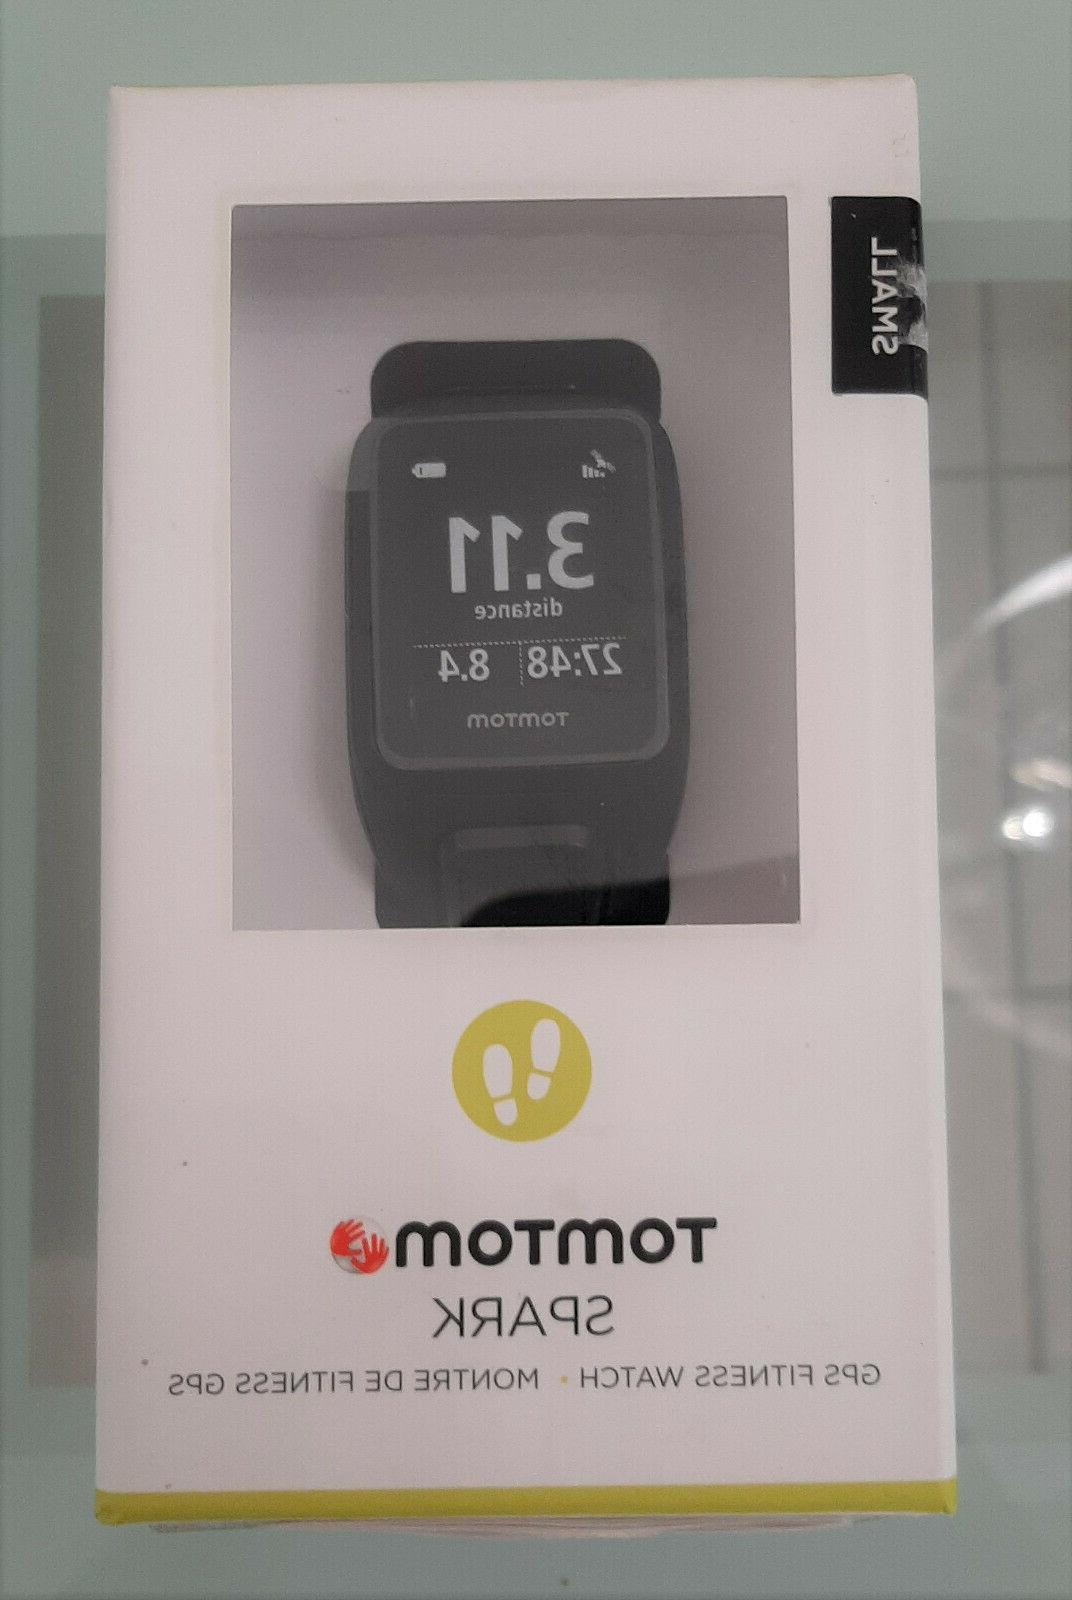 spark gps fitness watch small black new